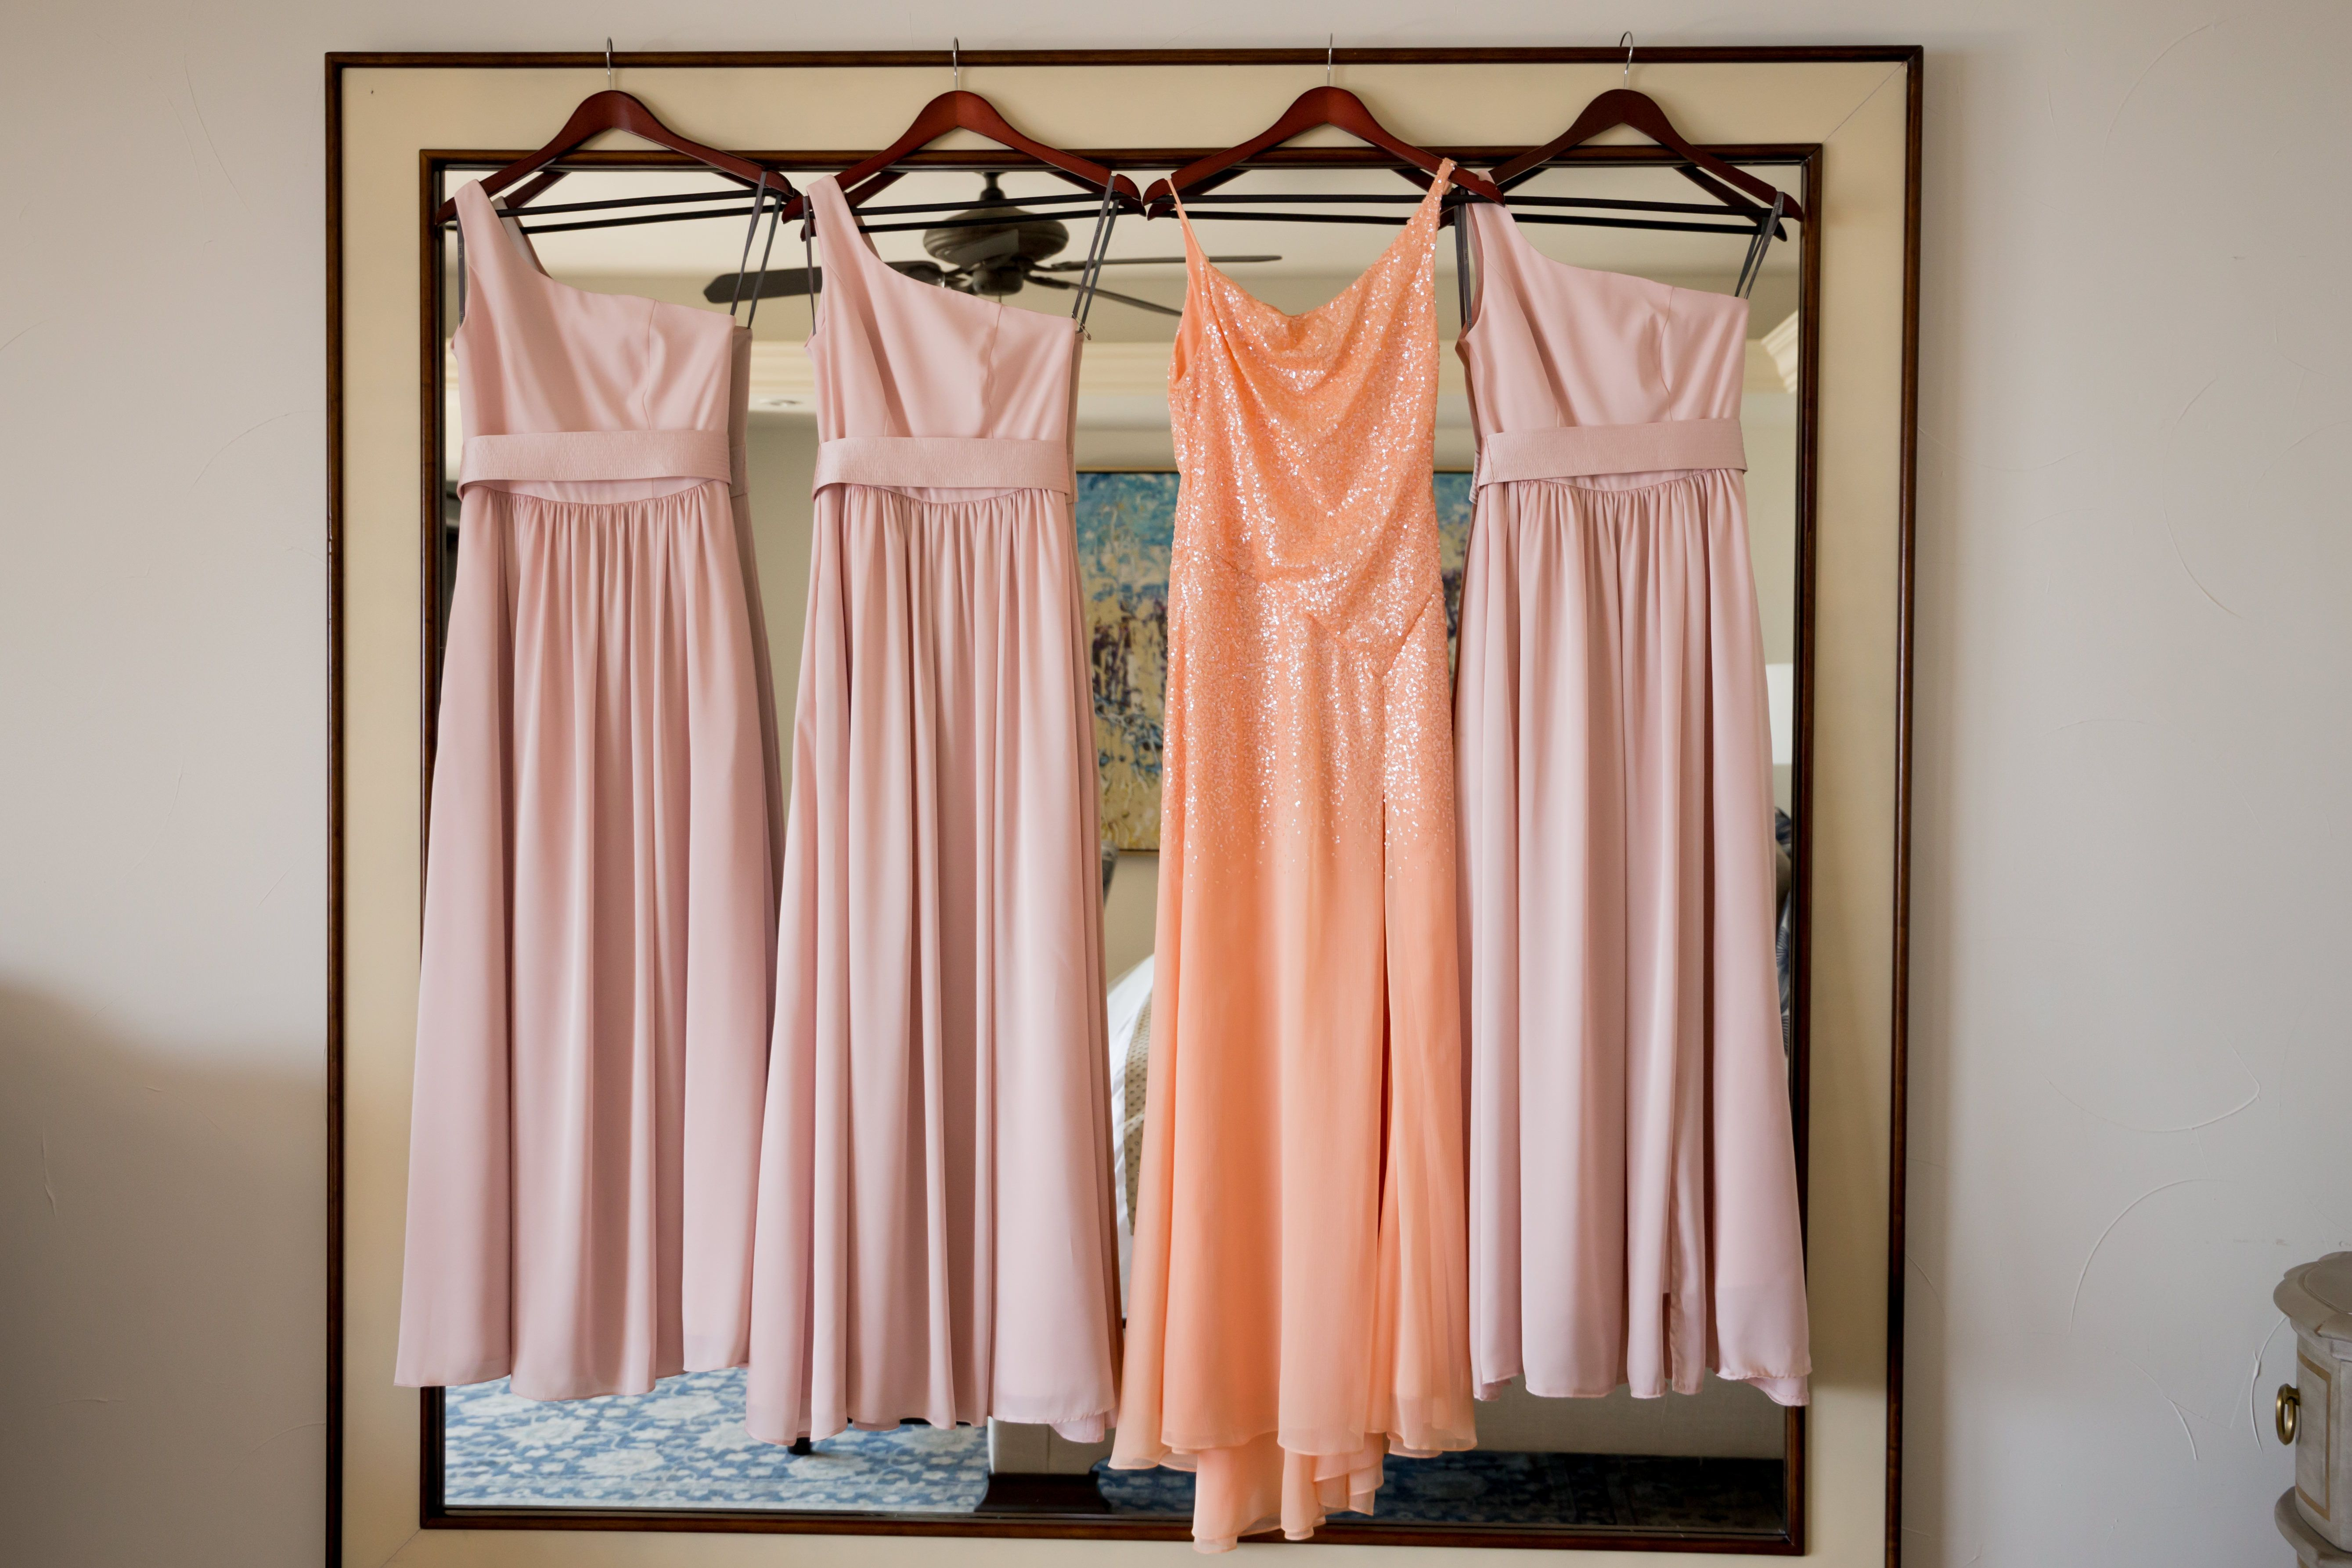 Bridesmaid dresses hanging up before wedding ceremony. My bride decided to go with pastel colors because the Villa had such neutral colors, they contrasted perfectly